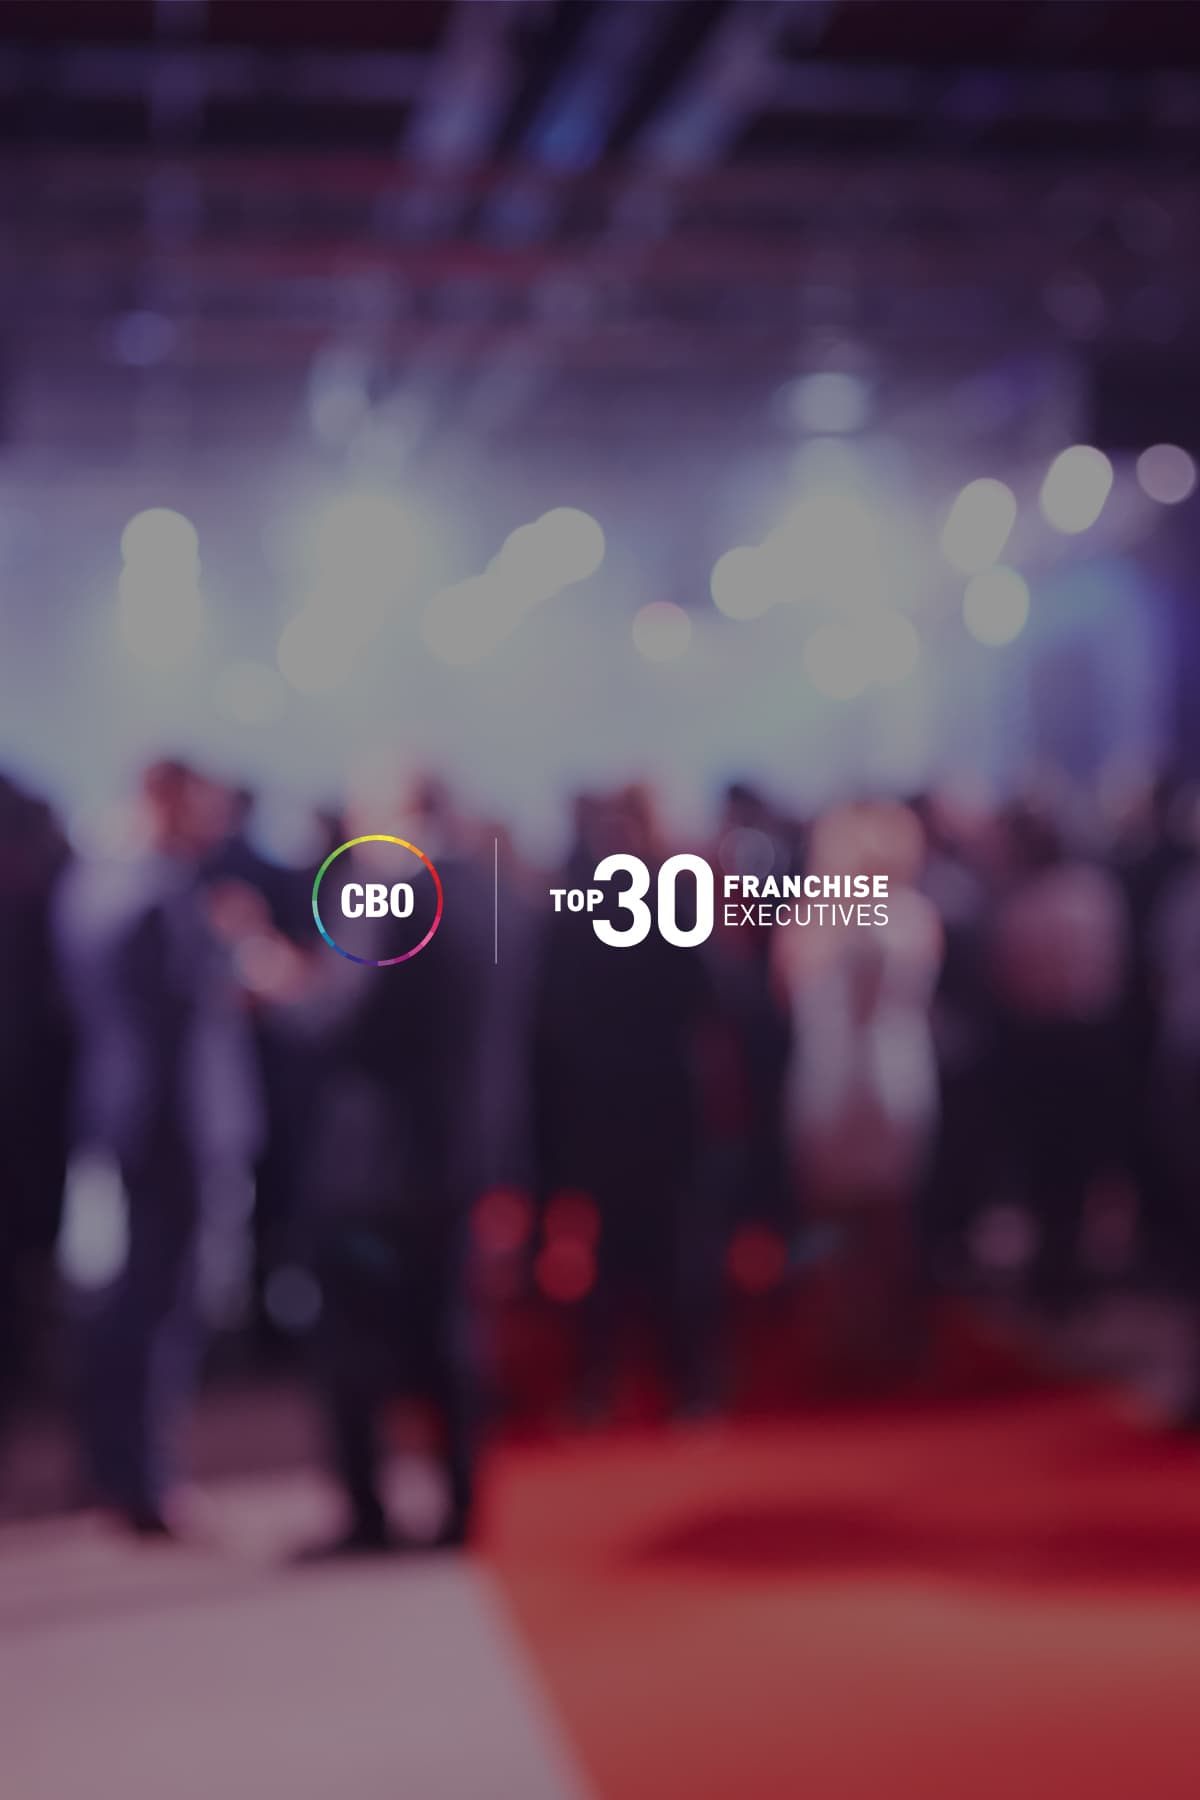 Top 30 Franchise Executives 2019 - Event Sponsored by CBO